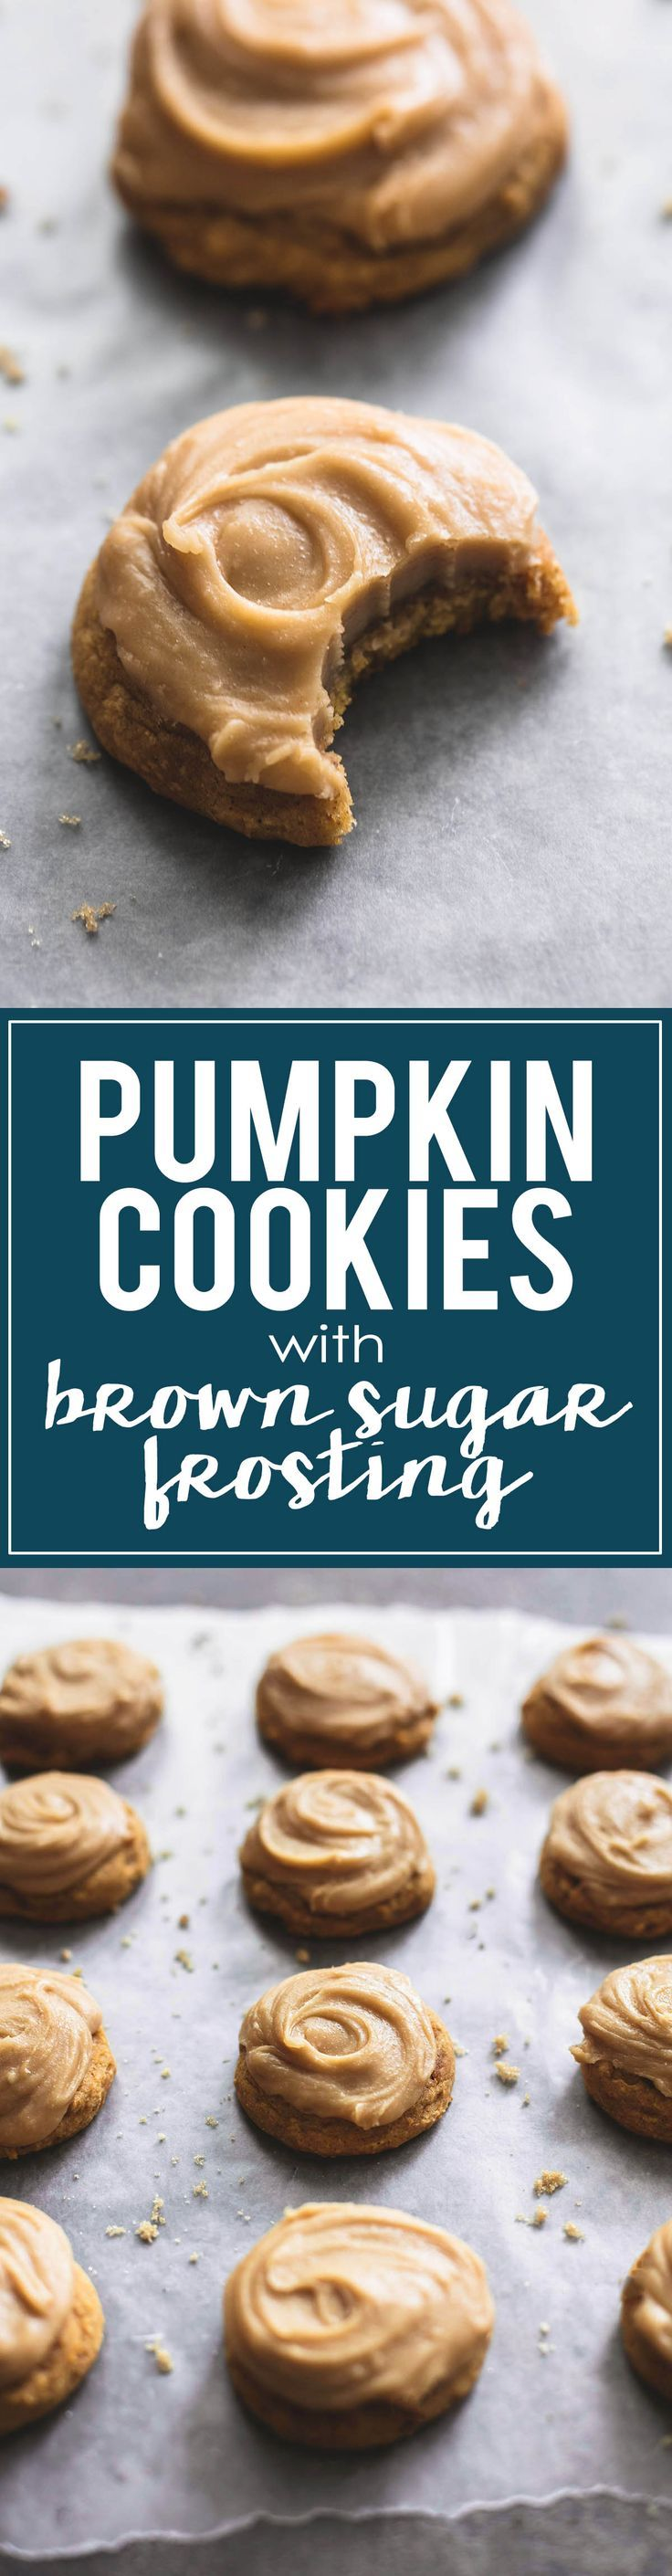 Pumpkin Cookies with Brown Sugar Frosting | http://lecremedelacrumb.com